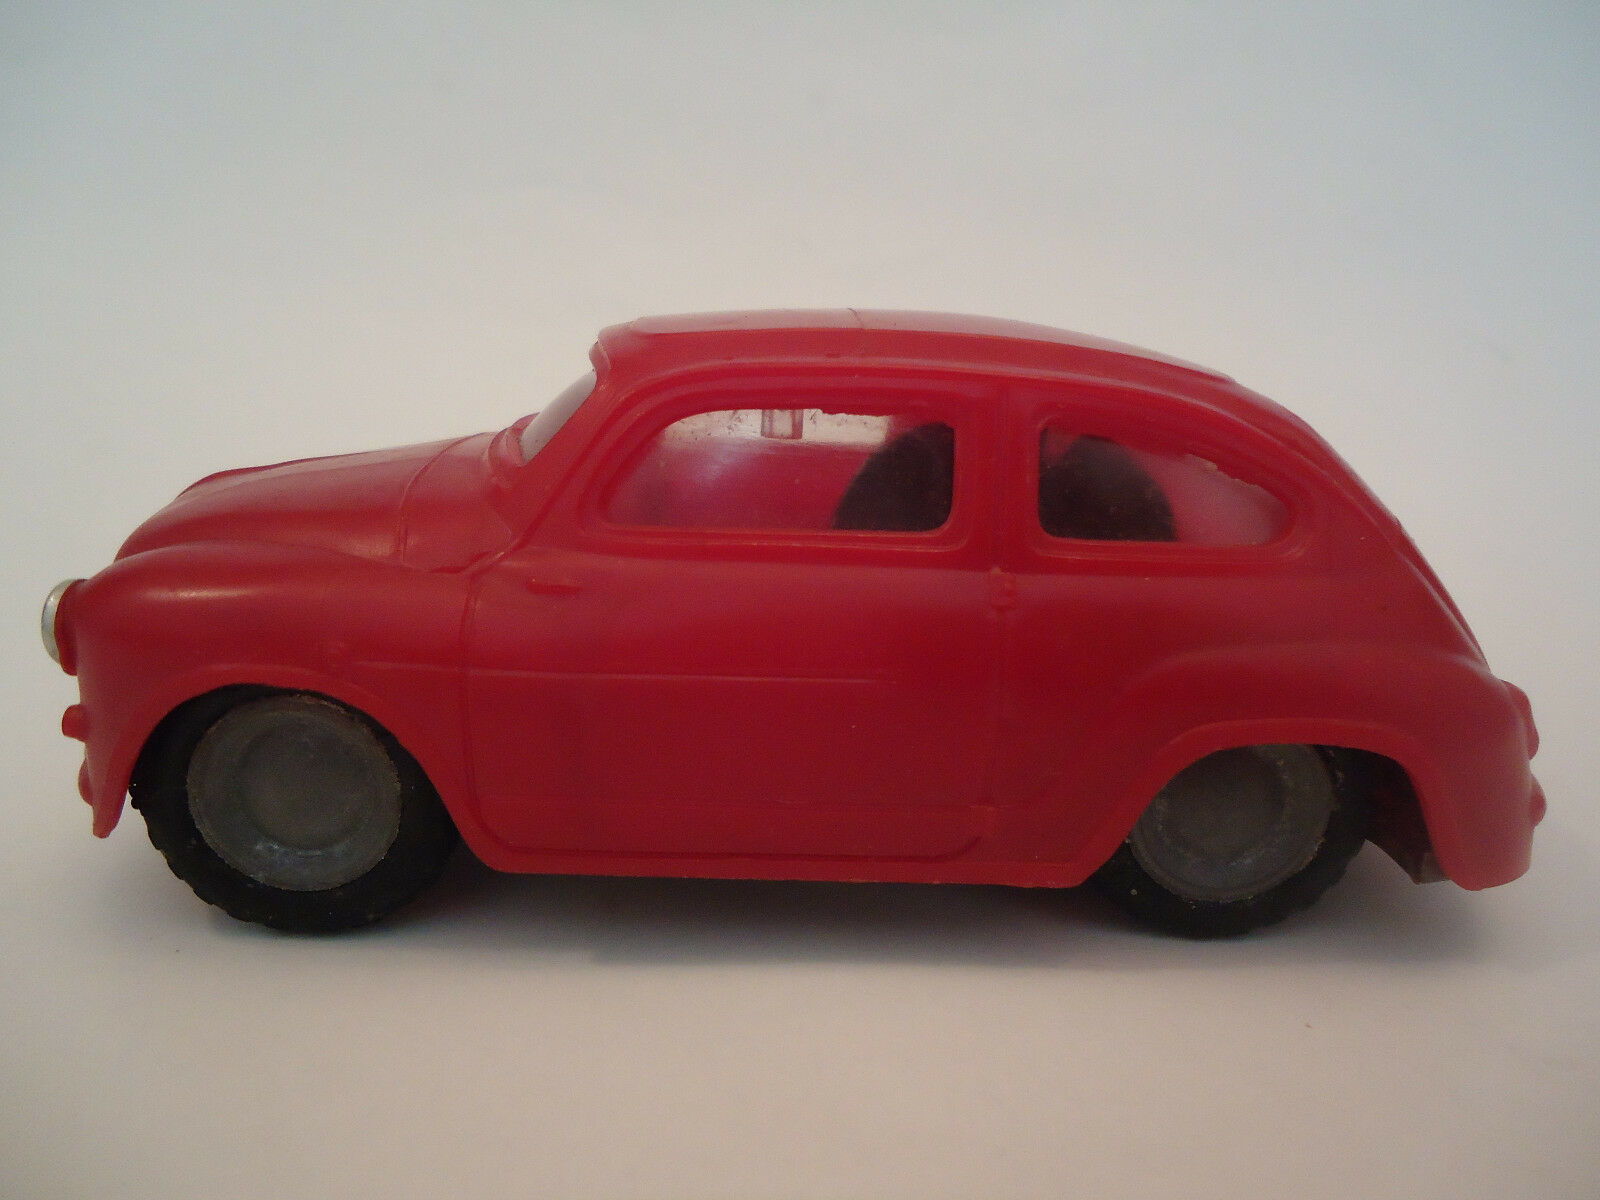 Vintage Rare rosso Fiat 600 Friction Toy Car Foreign Hungary